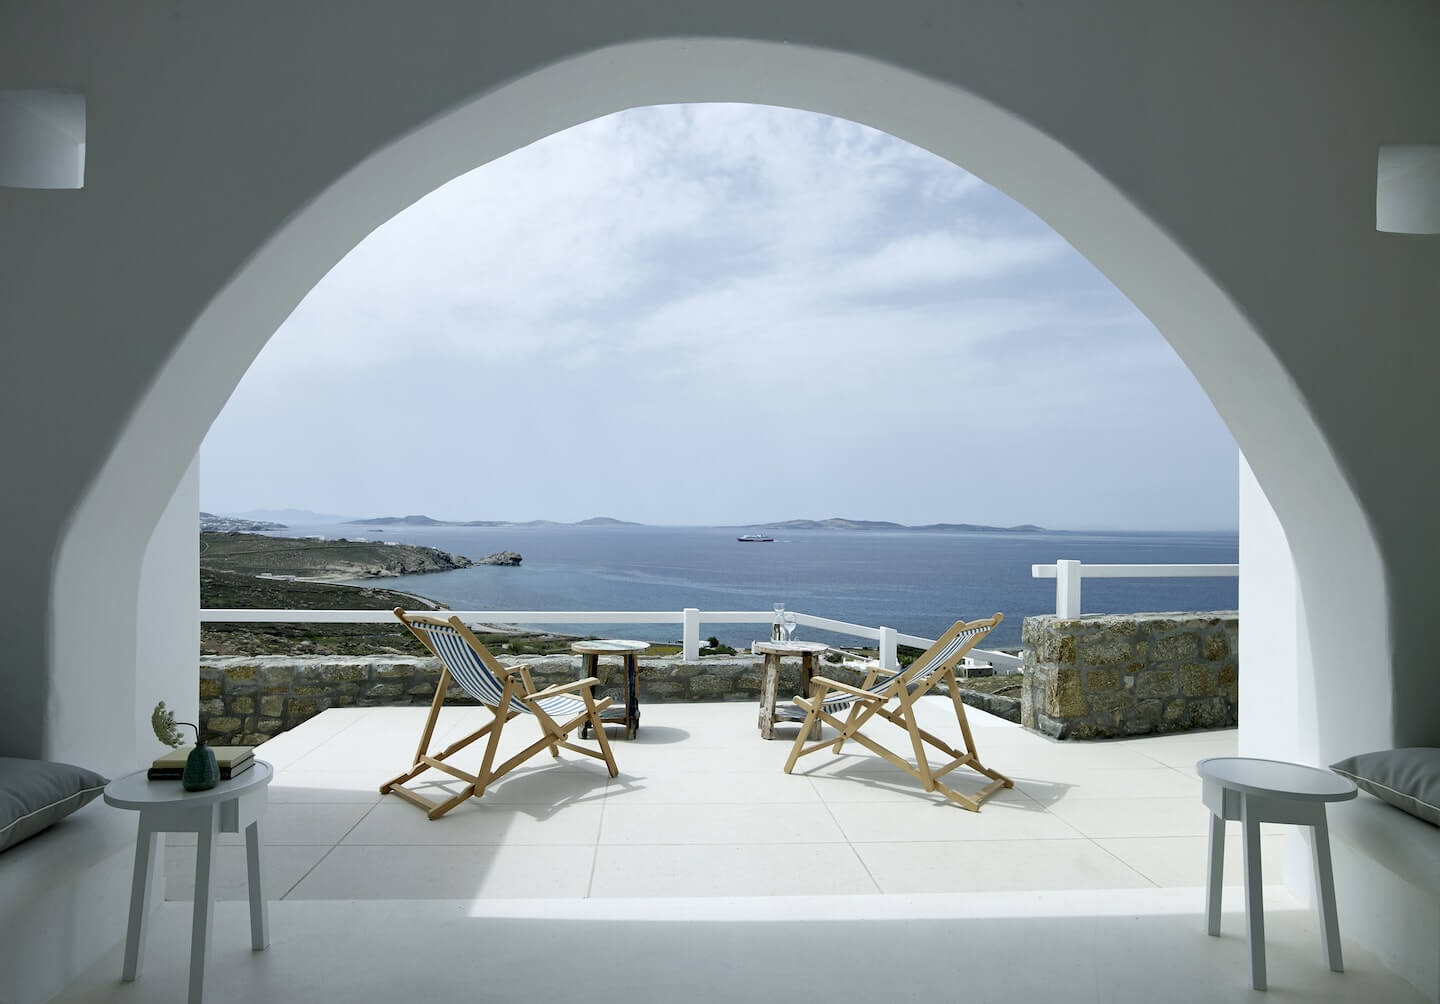 Archway of one of the luxury San Marco villas in Mykonos with a view to the Aegean sea.